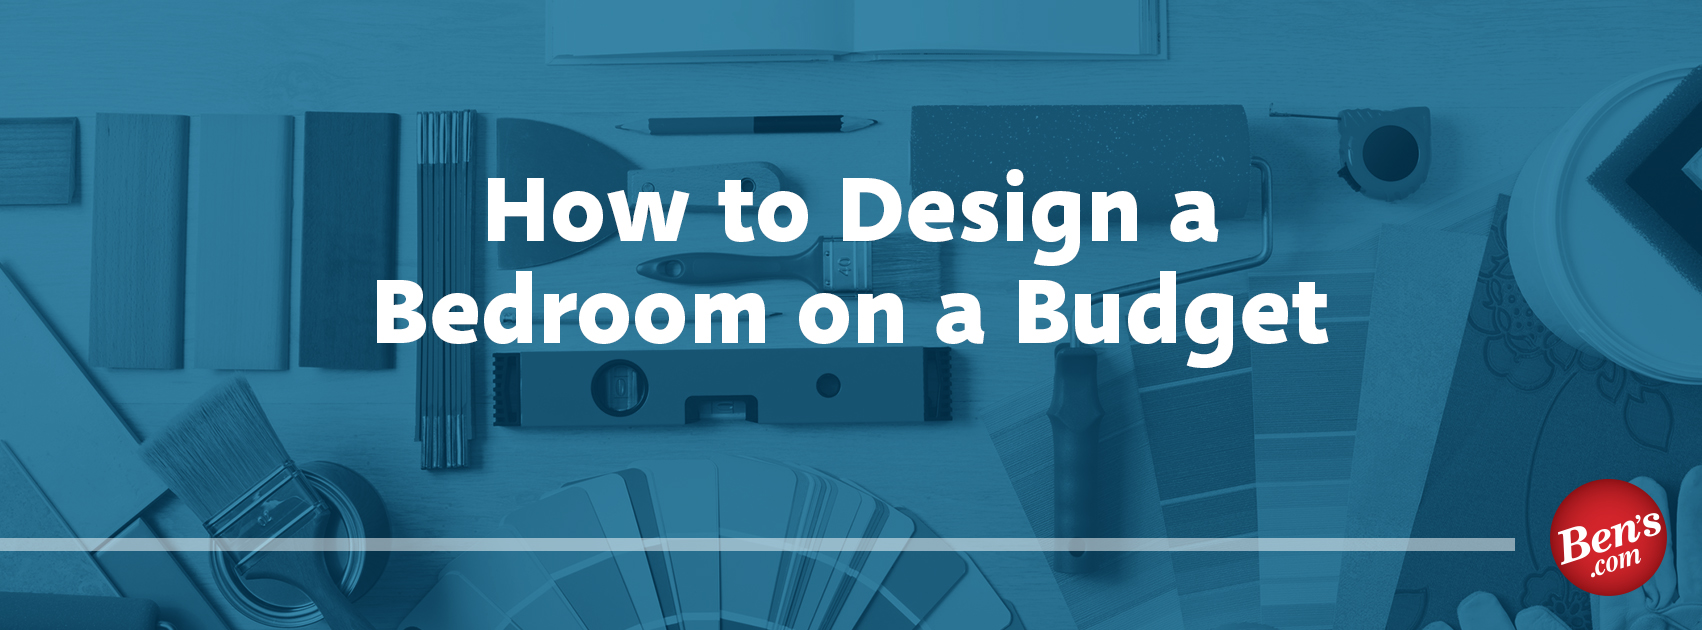 December (6) _ How to Design a Bedroom on a Budget